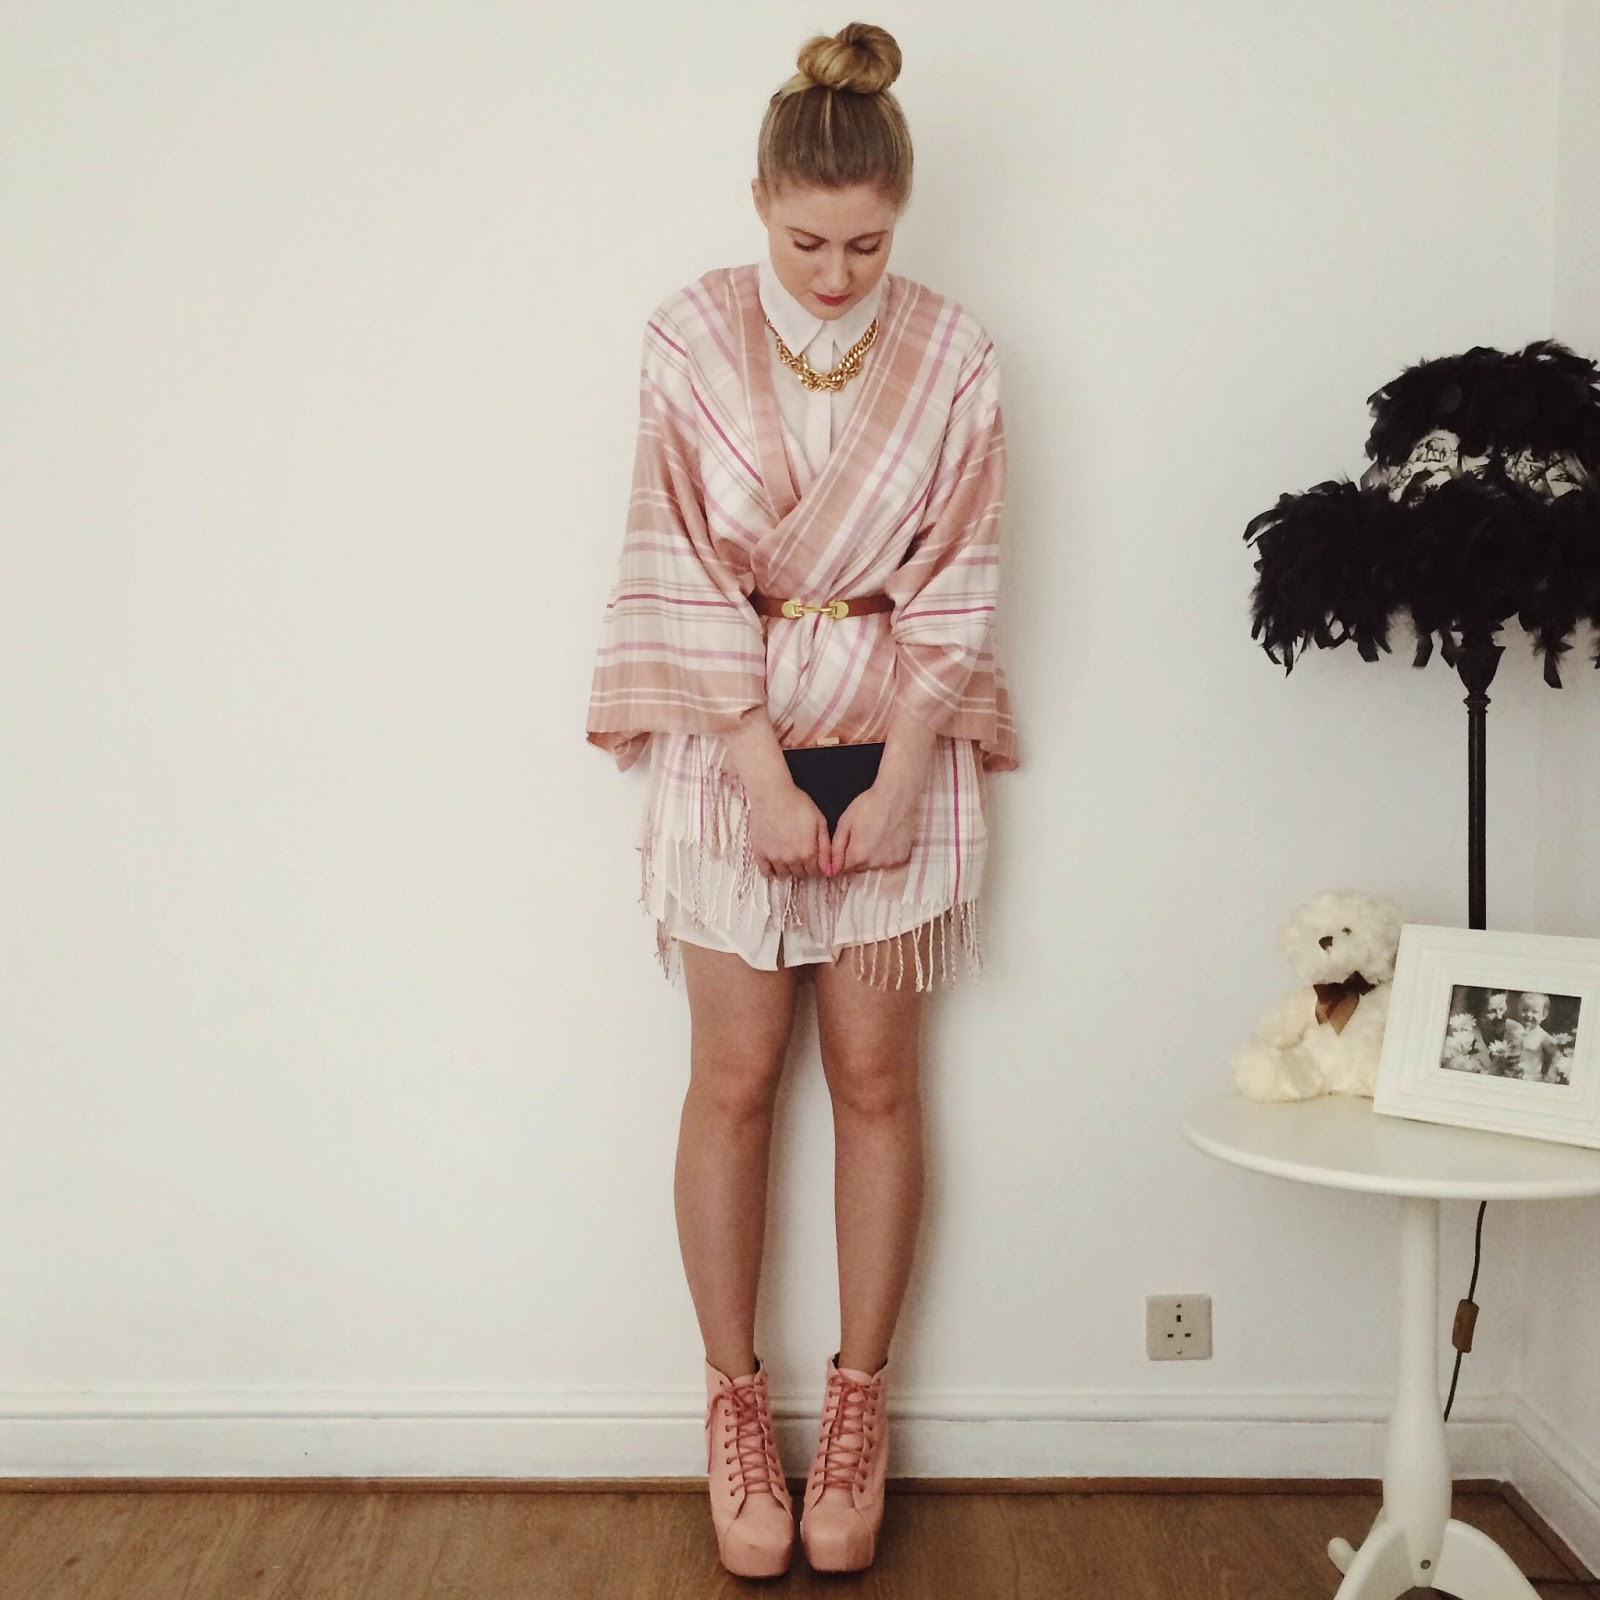 FashionFake, a UK fashion and lifestyle blog. Paint the town pink with this cute Spring ready outfit!